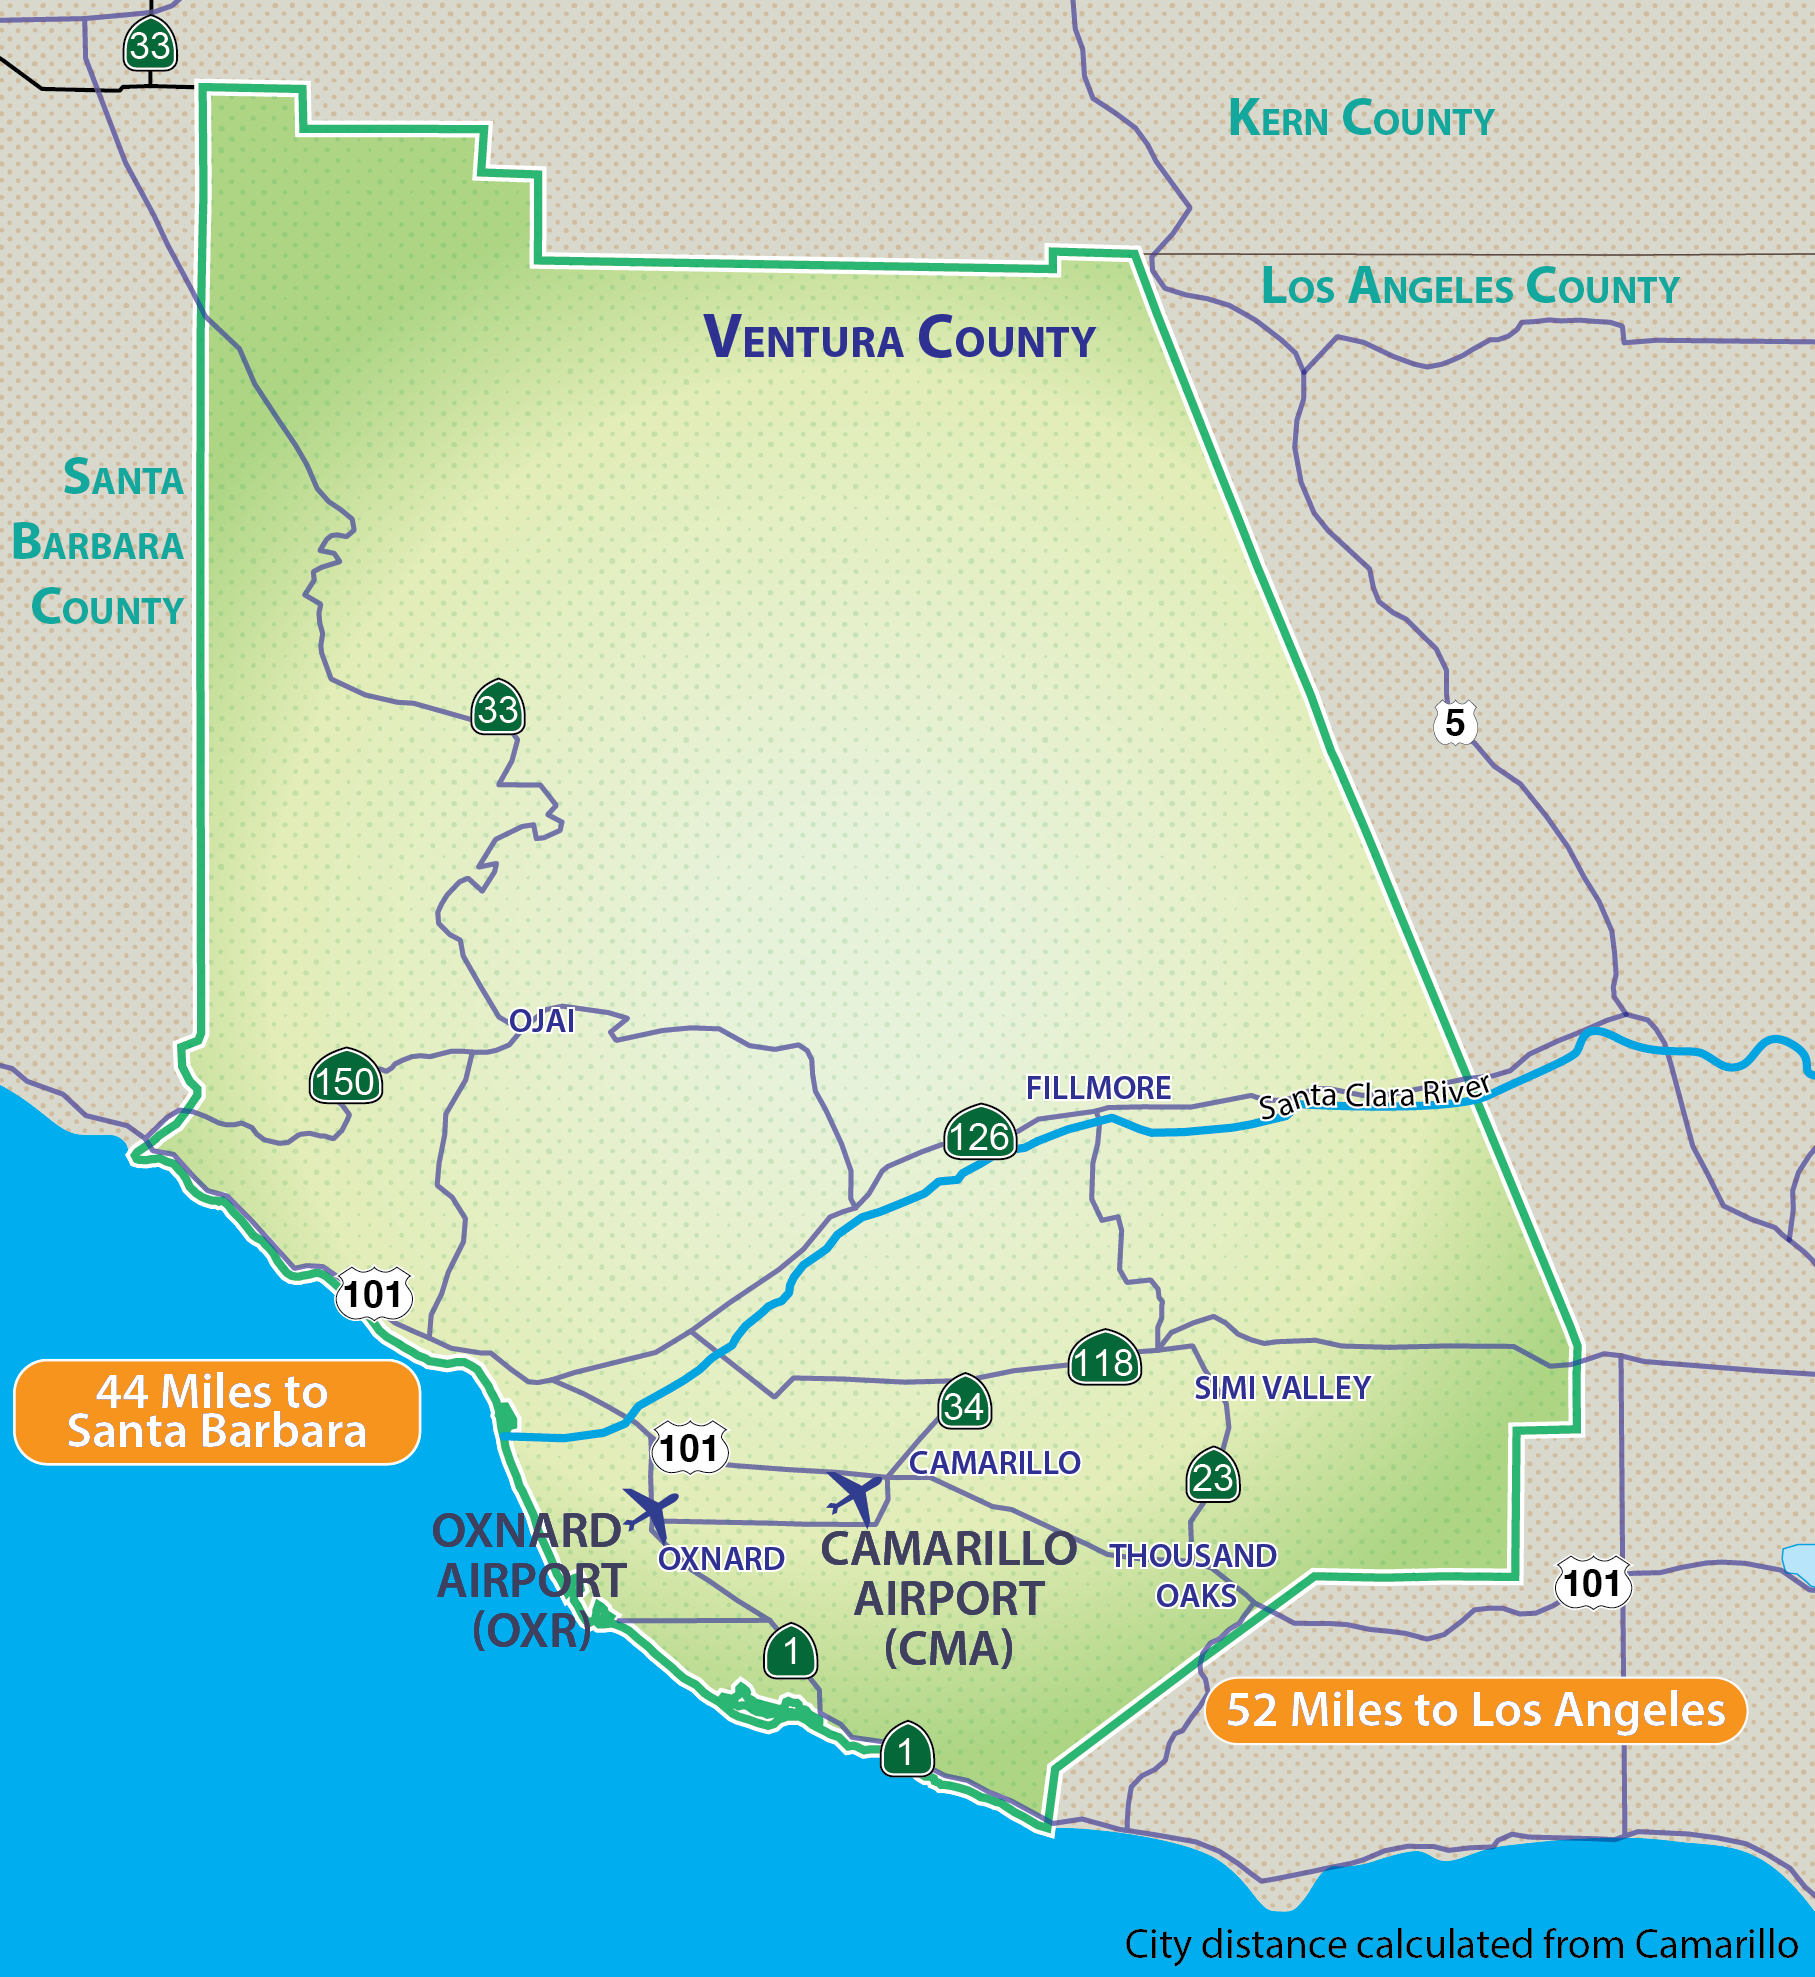 Ventura County owns and operates two public airport facilities: Camarillo Airport (CMA) and Oxnard Airport (OXR). The Camarillo Airport is located approximately three miles west of downtown Camarillo south of U.S. Route 101 and the Oxnard Airport is located one mile west of downtown Oxnard on W. 5th Street.